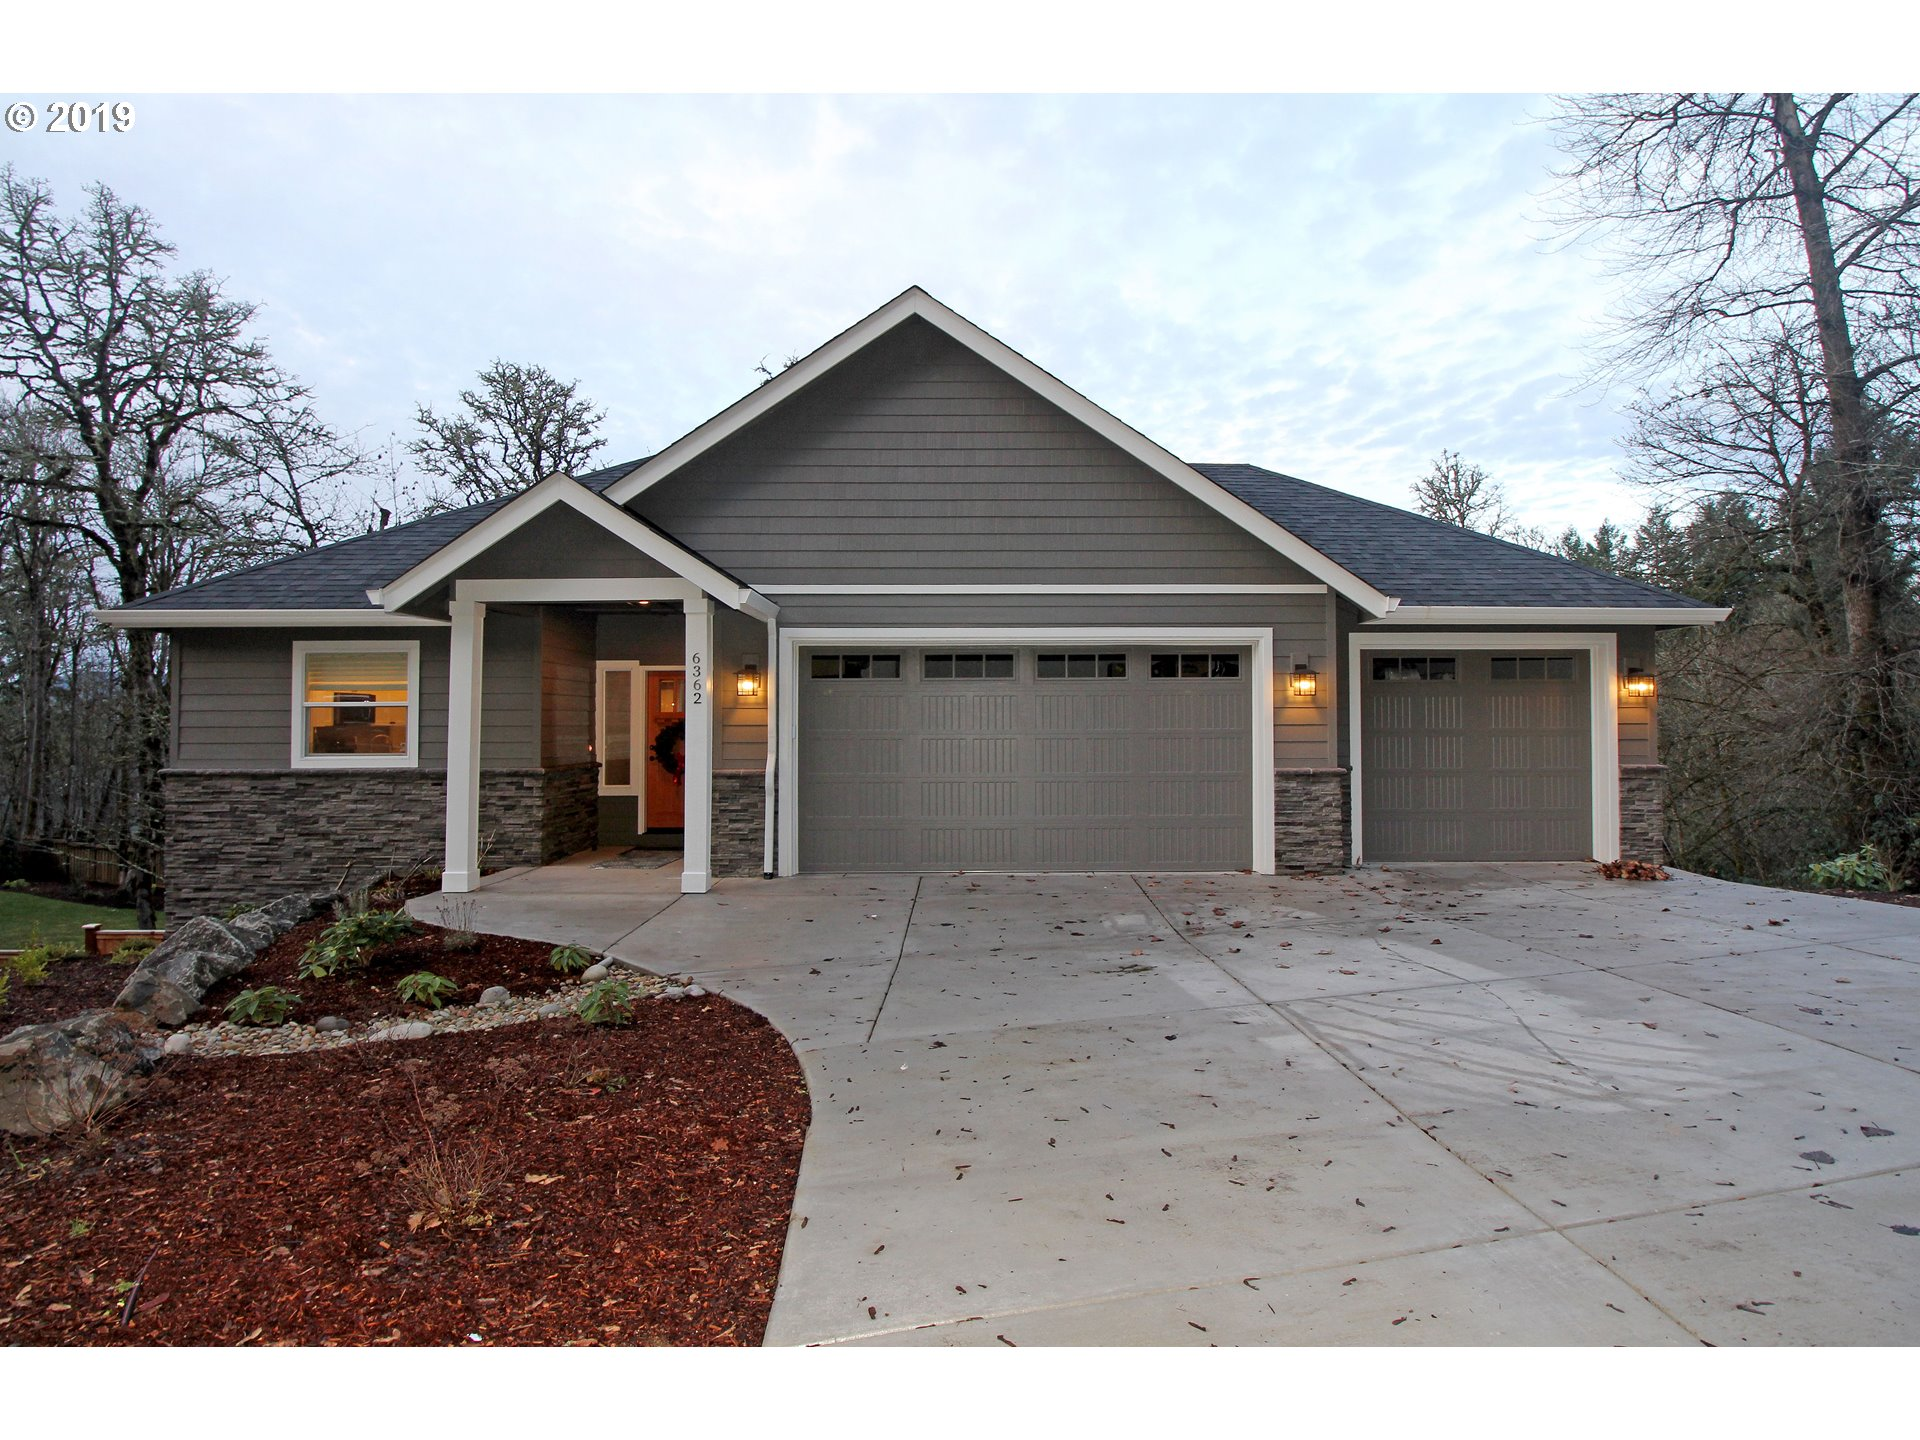 Photo of 6362 FOREST RIDGE DR Springfield OR 97478